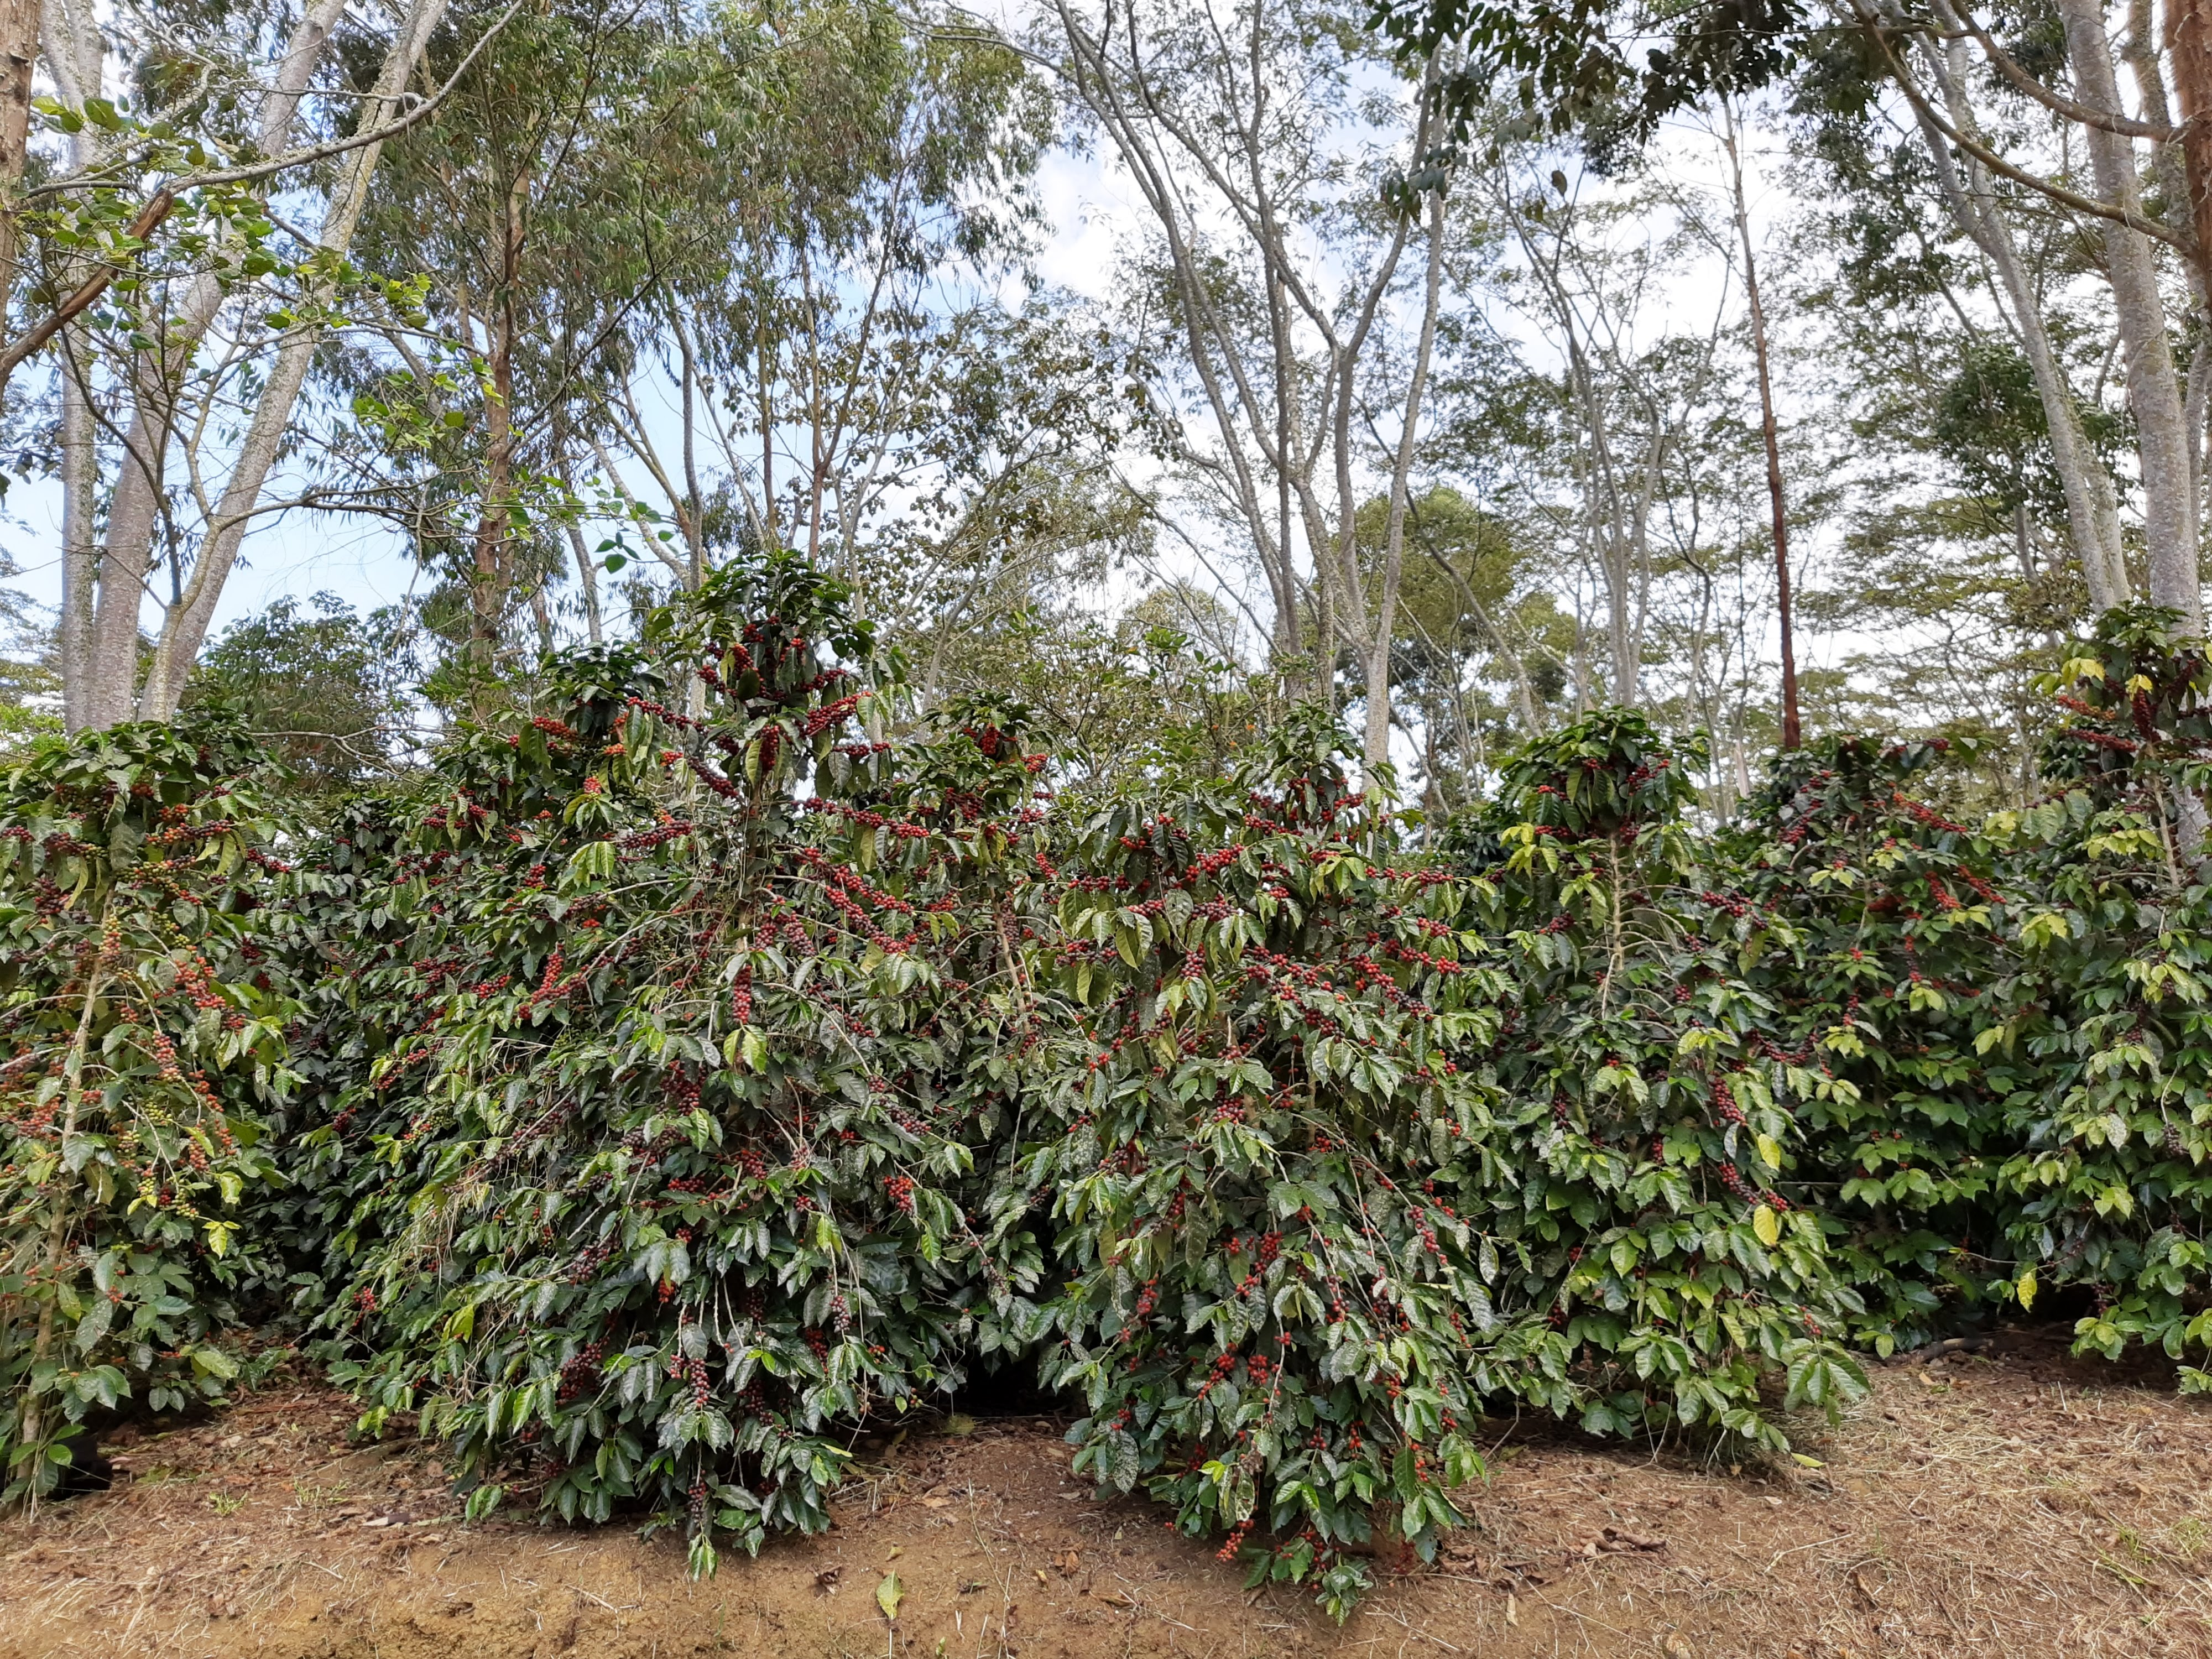 Castillo trees loaded with ripe cherries